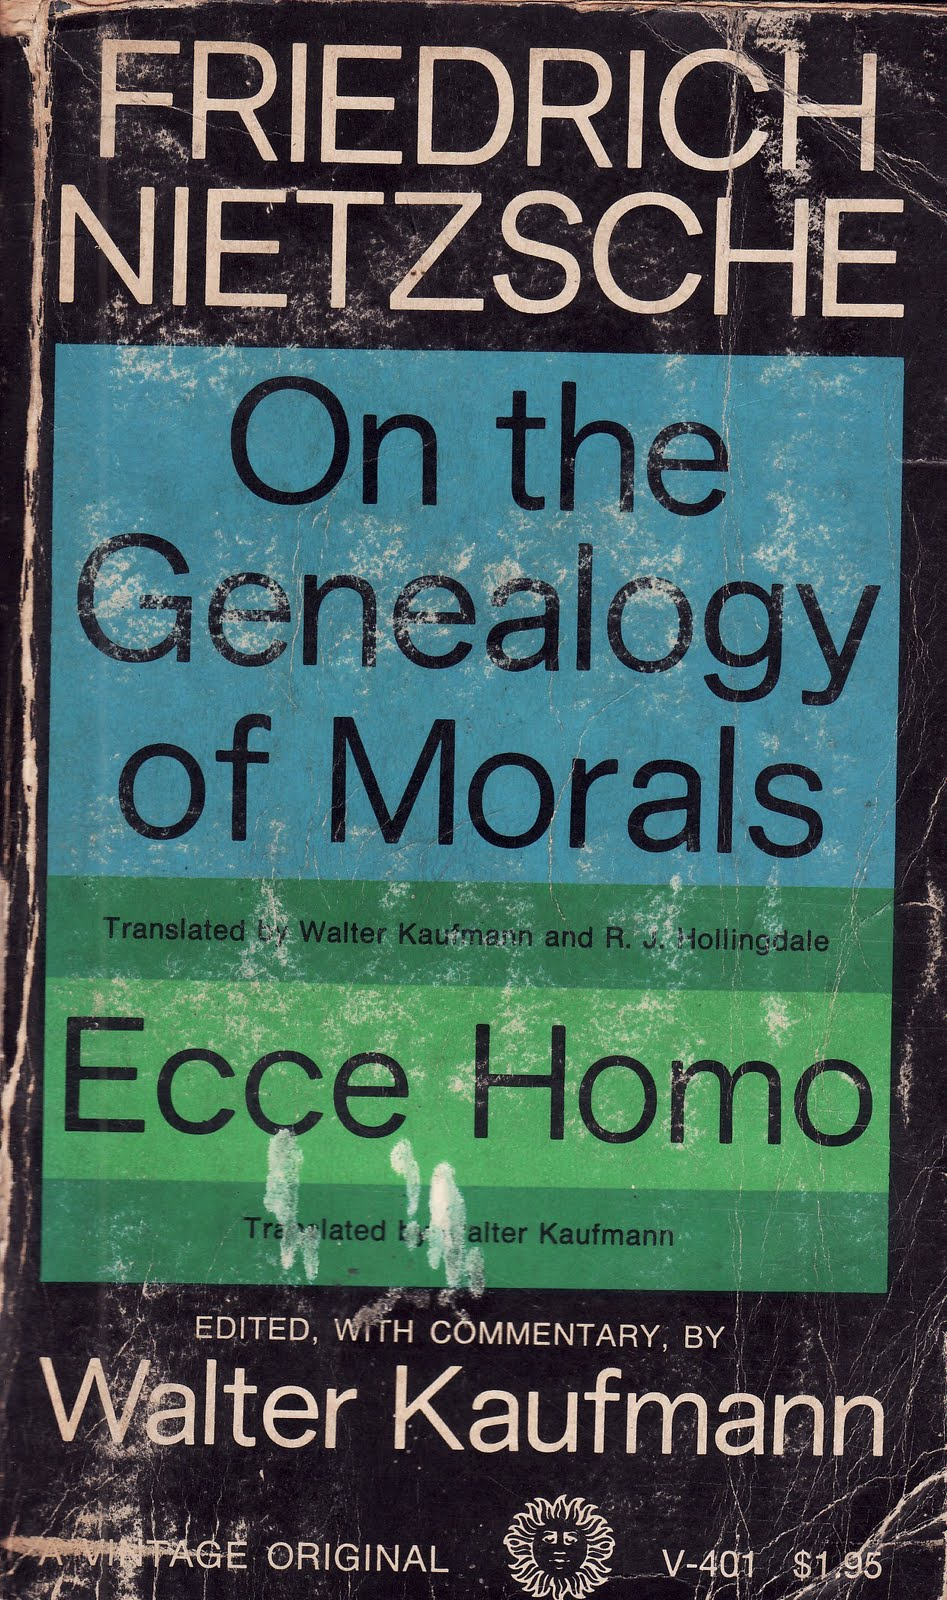 nietzsche on the genealogy of morals second essay Nietzsche is one of the most challenging thinkers because he calls so many of our assumptions into question following his genealogical method, however, his doctrines become much easier to.